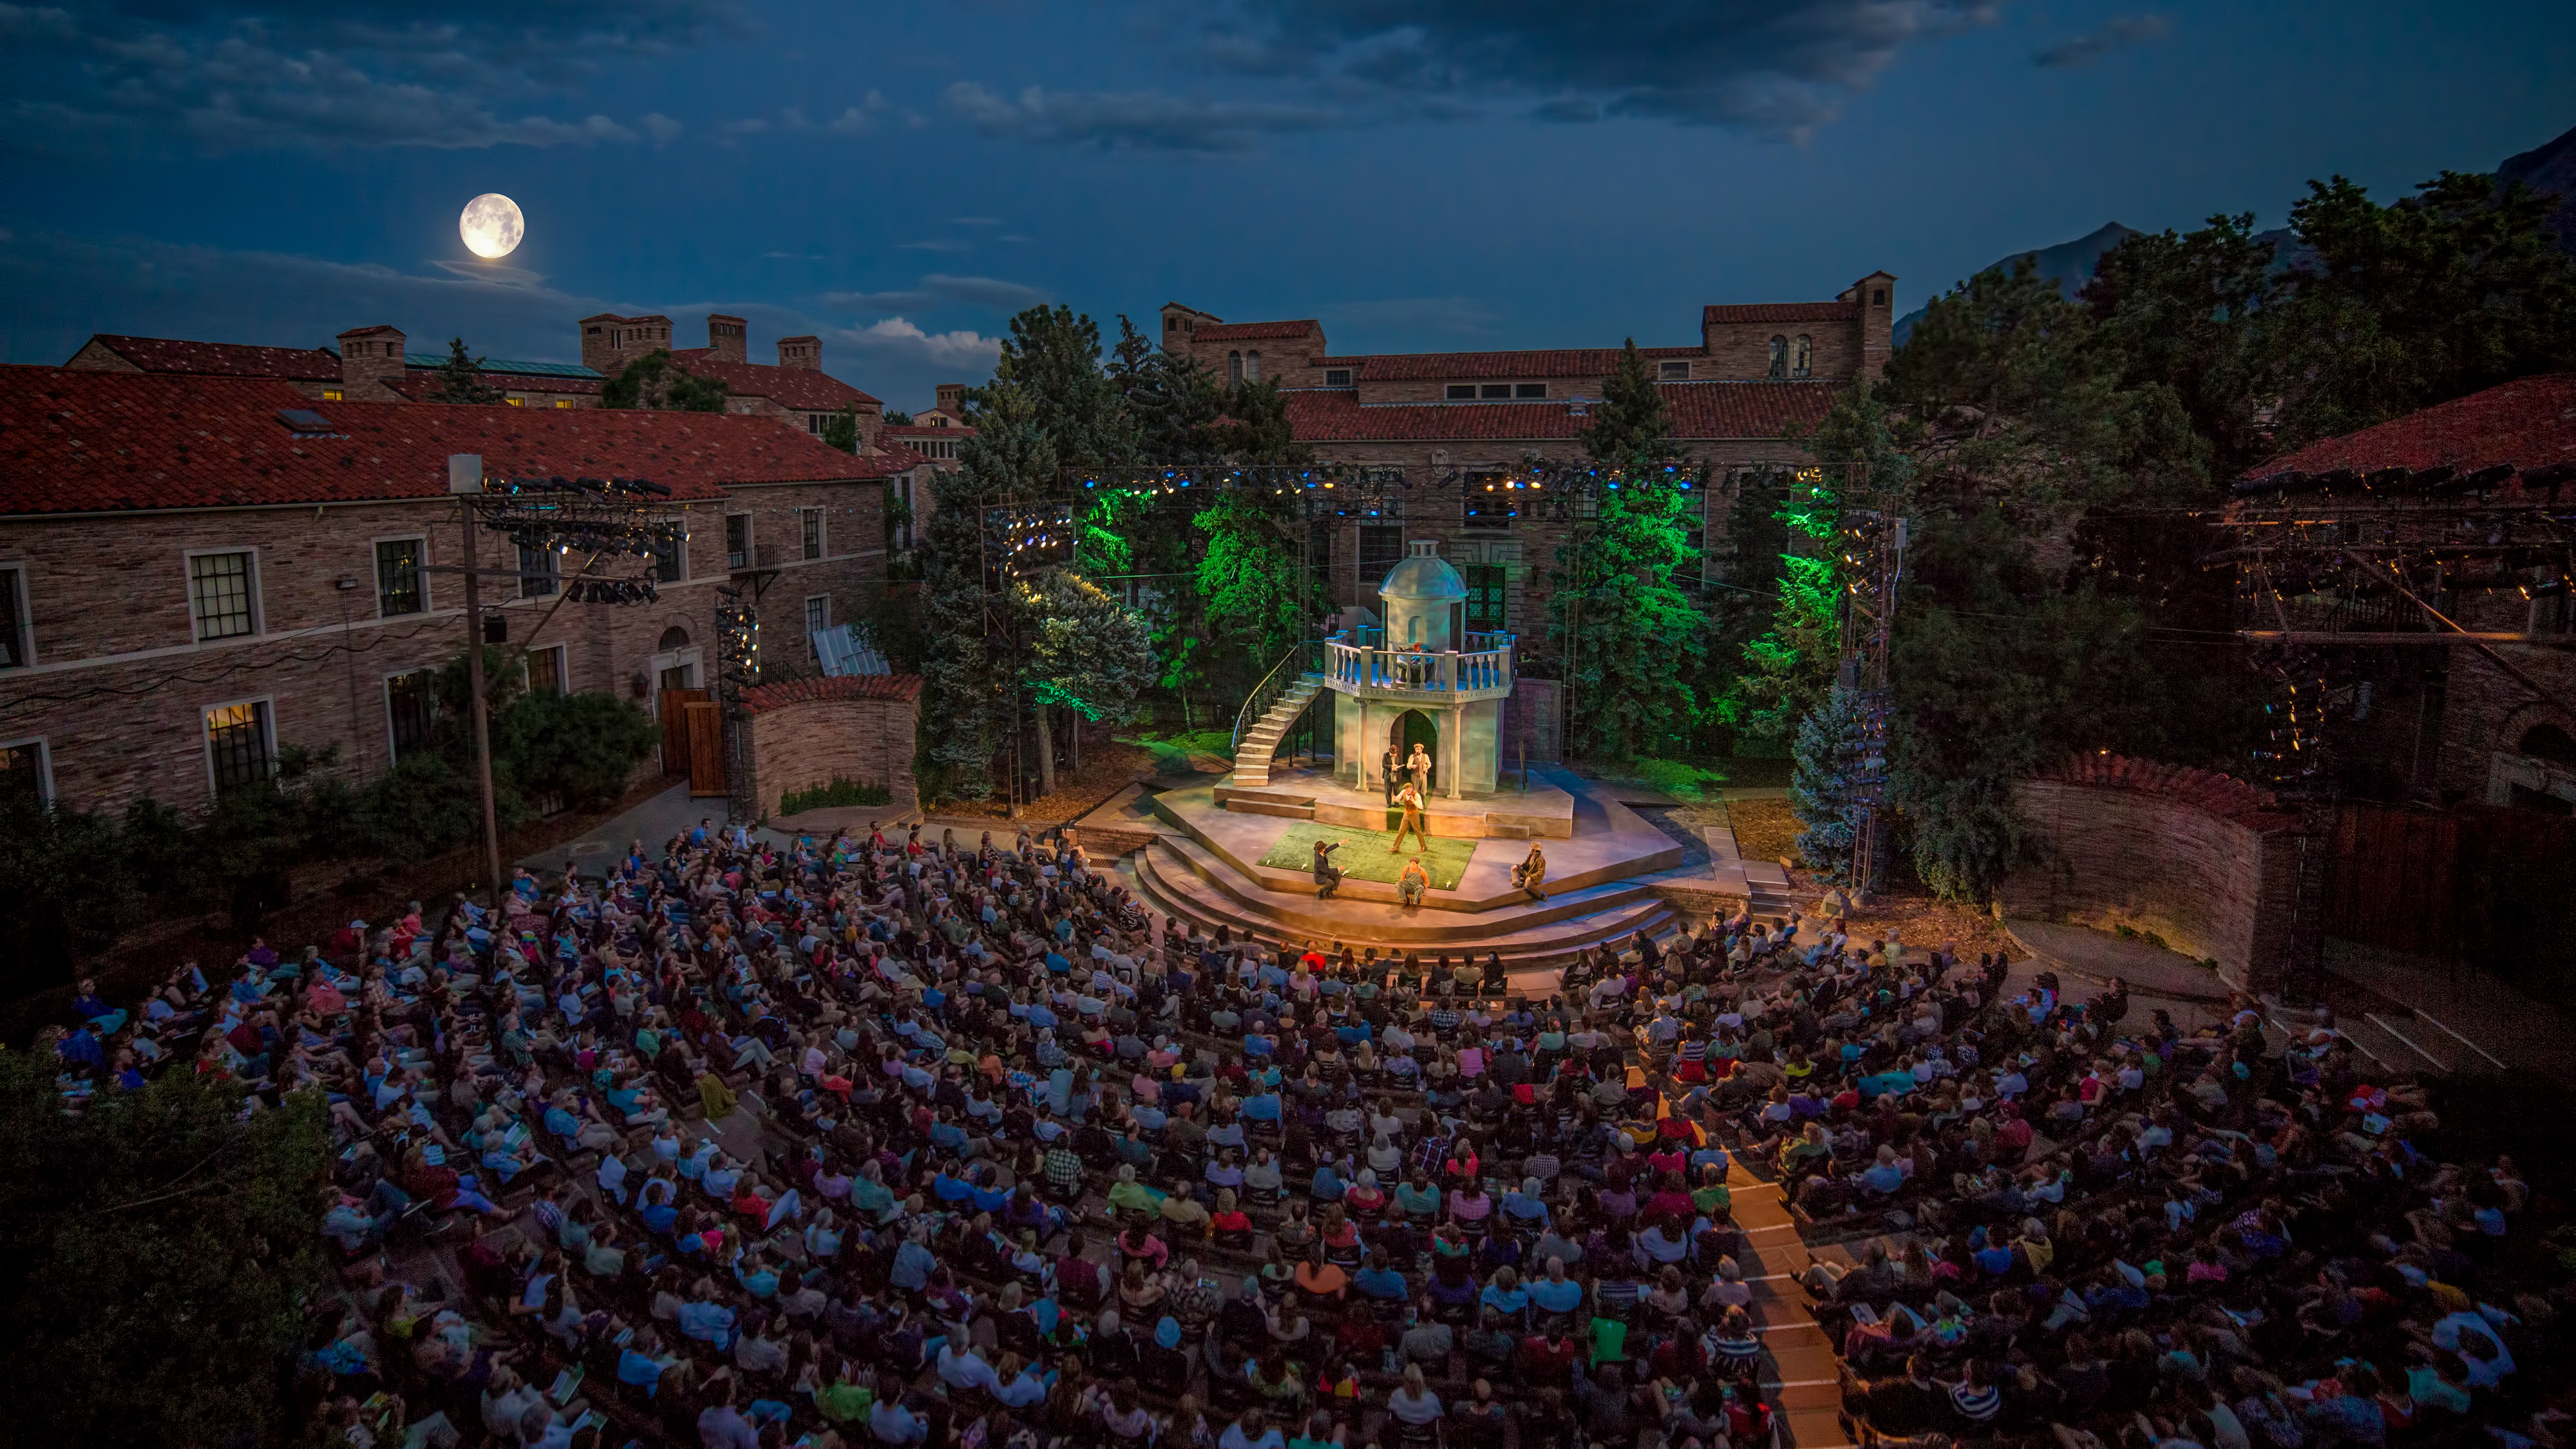 Photo: Mary Rippon Outdoor Theatre